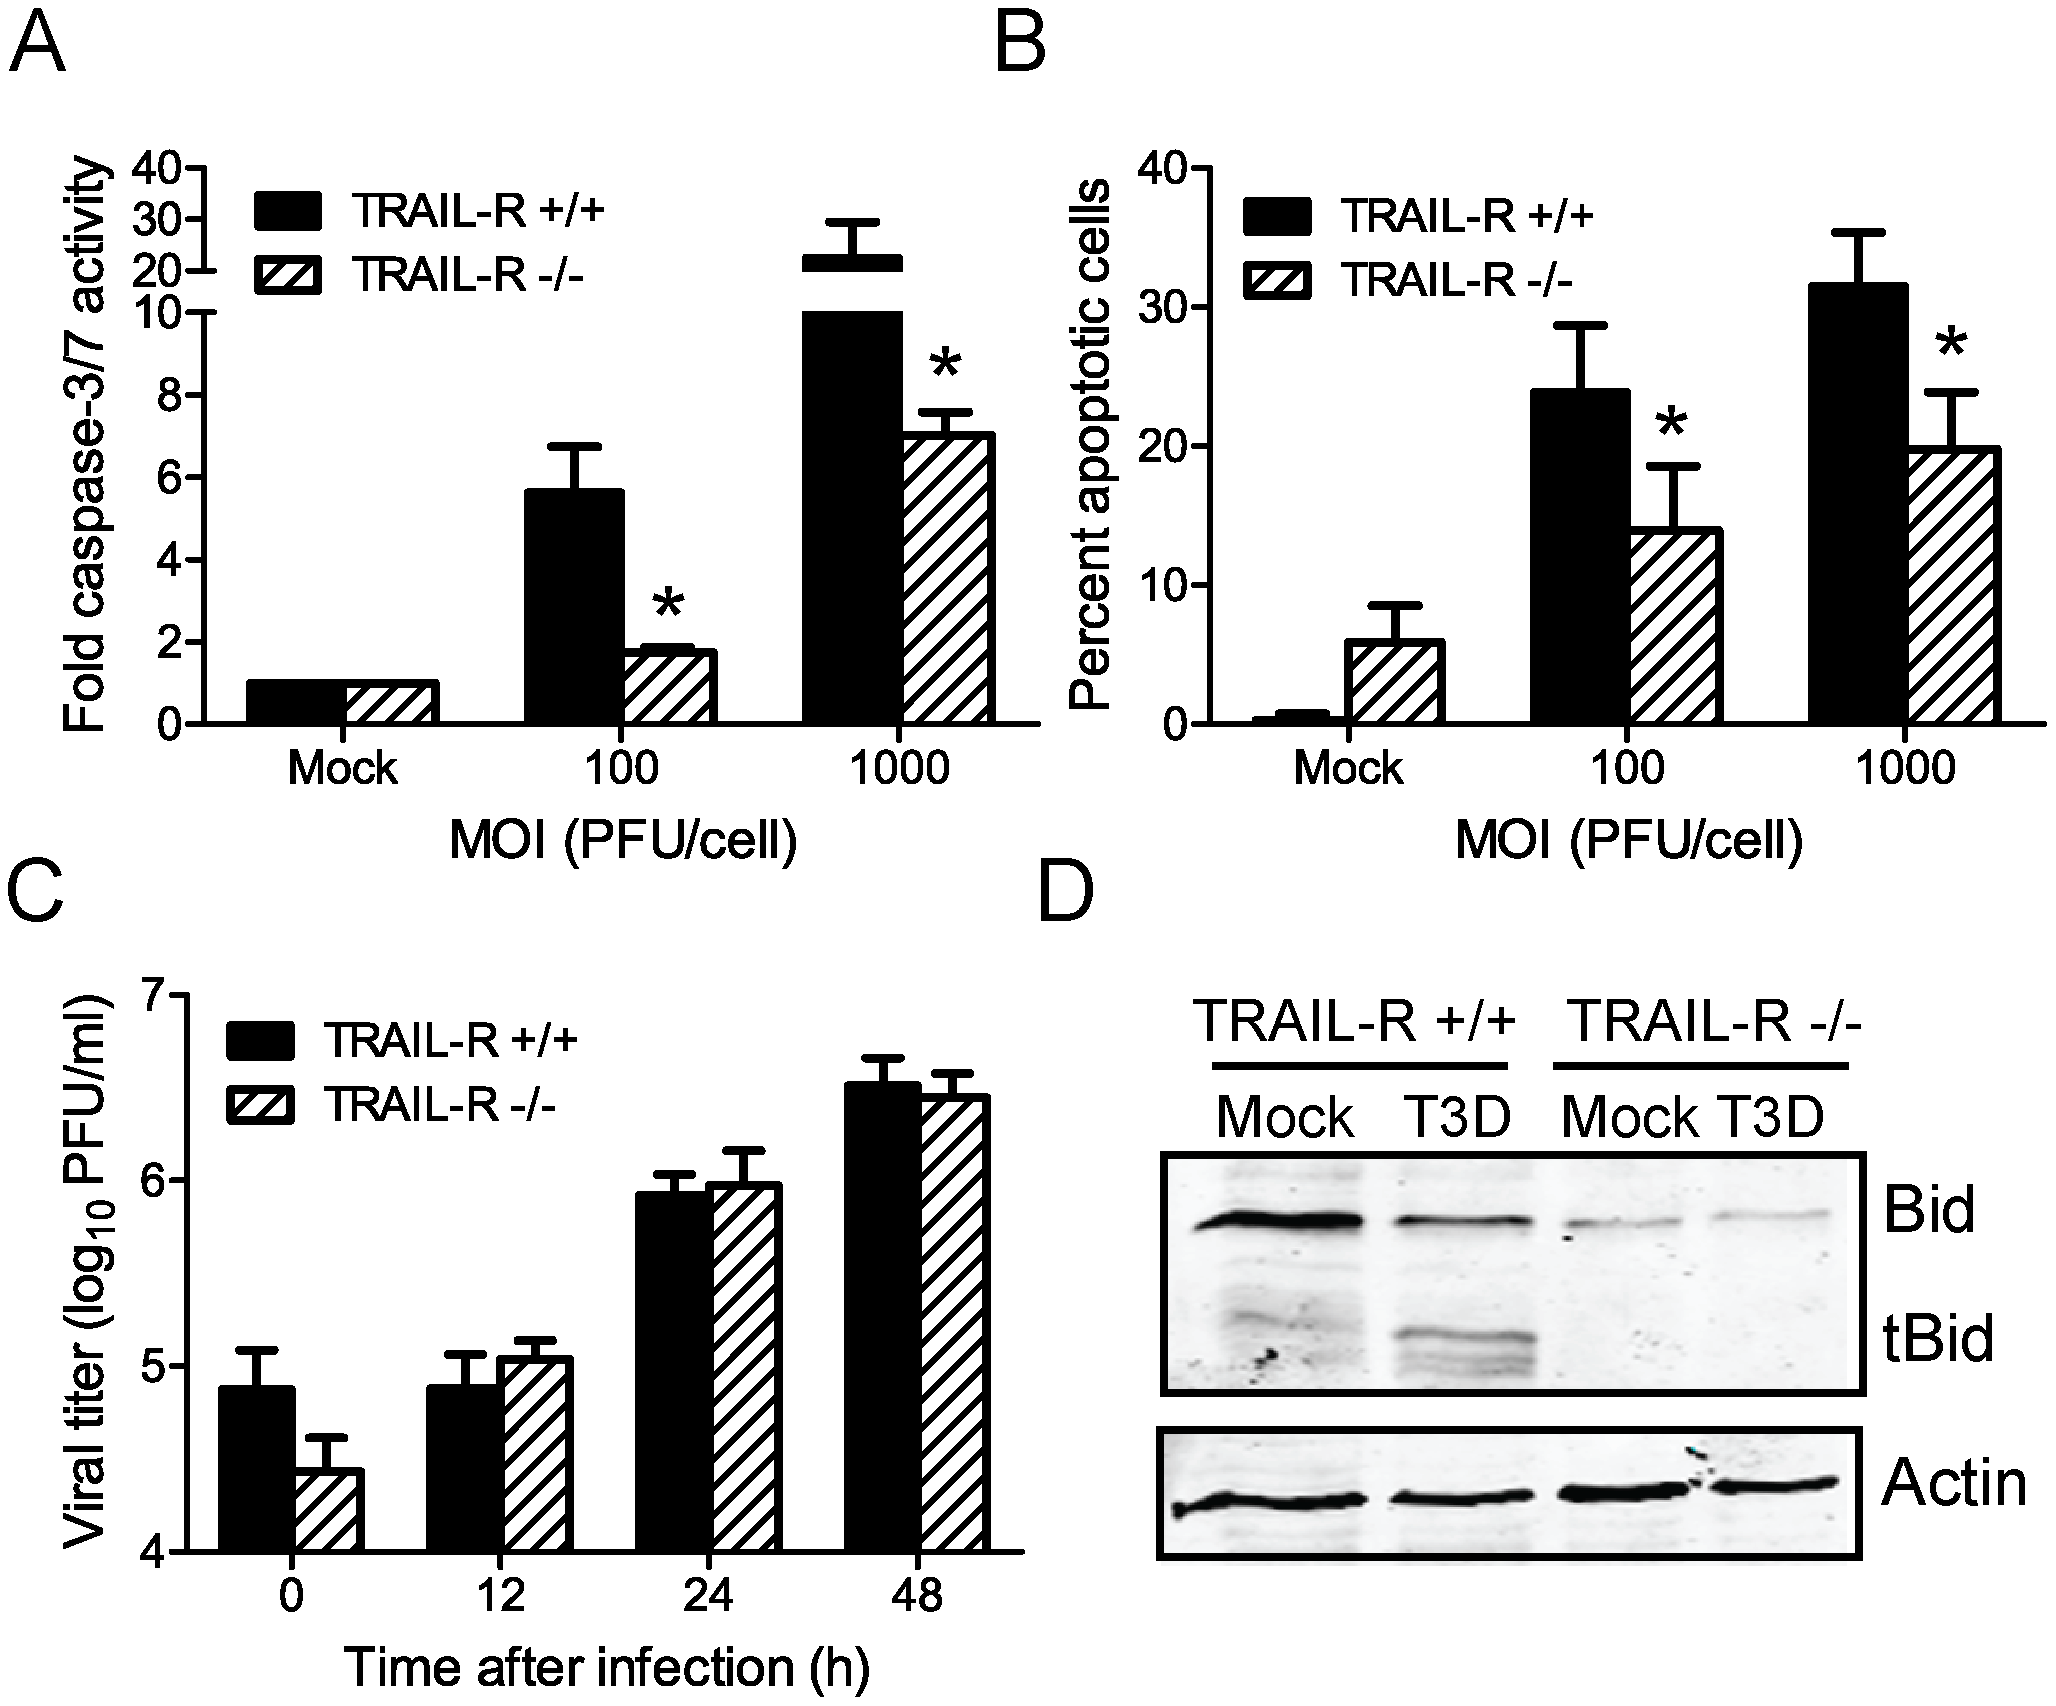 Death signaling via TRAIL-R contributes to Bid cleavage and apoptosis induction following reovirus infection.